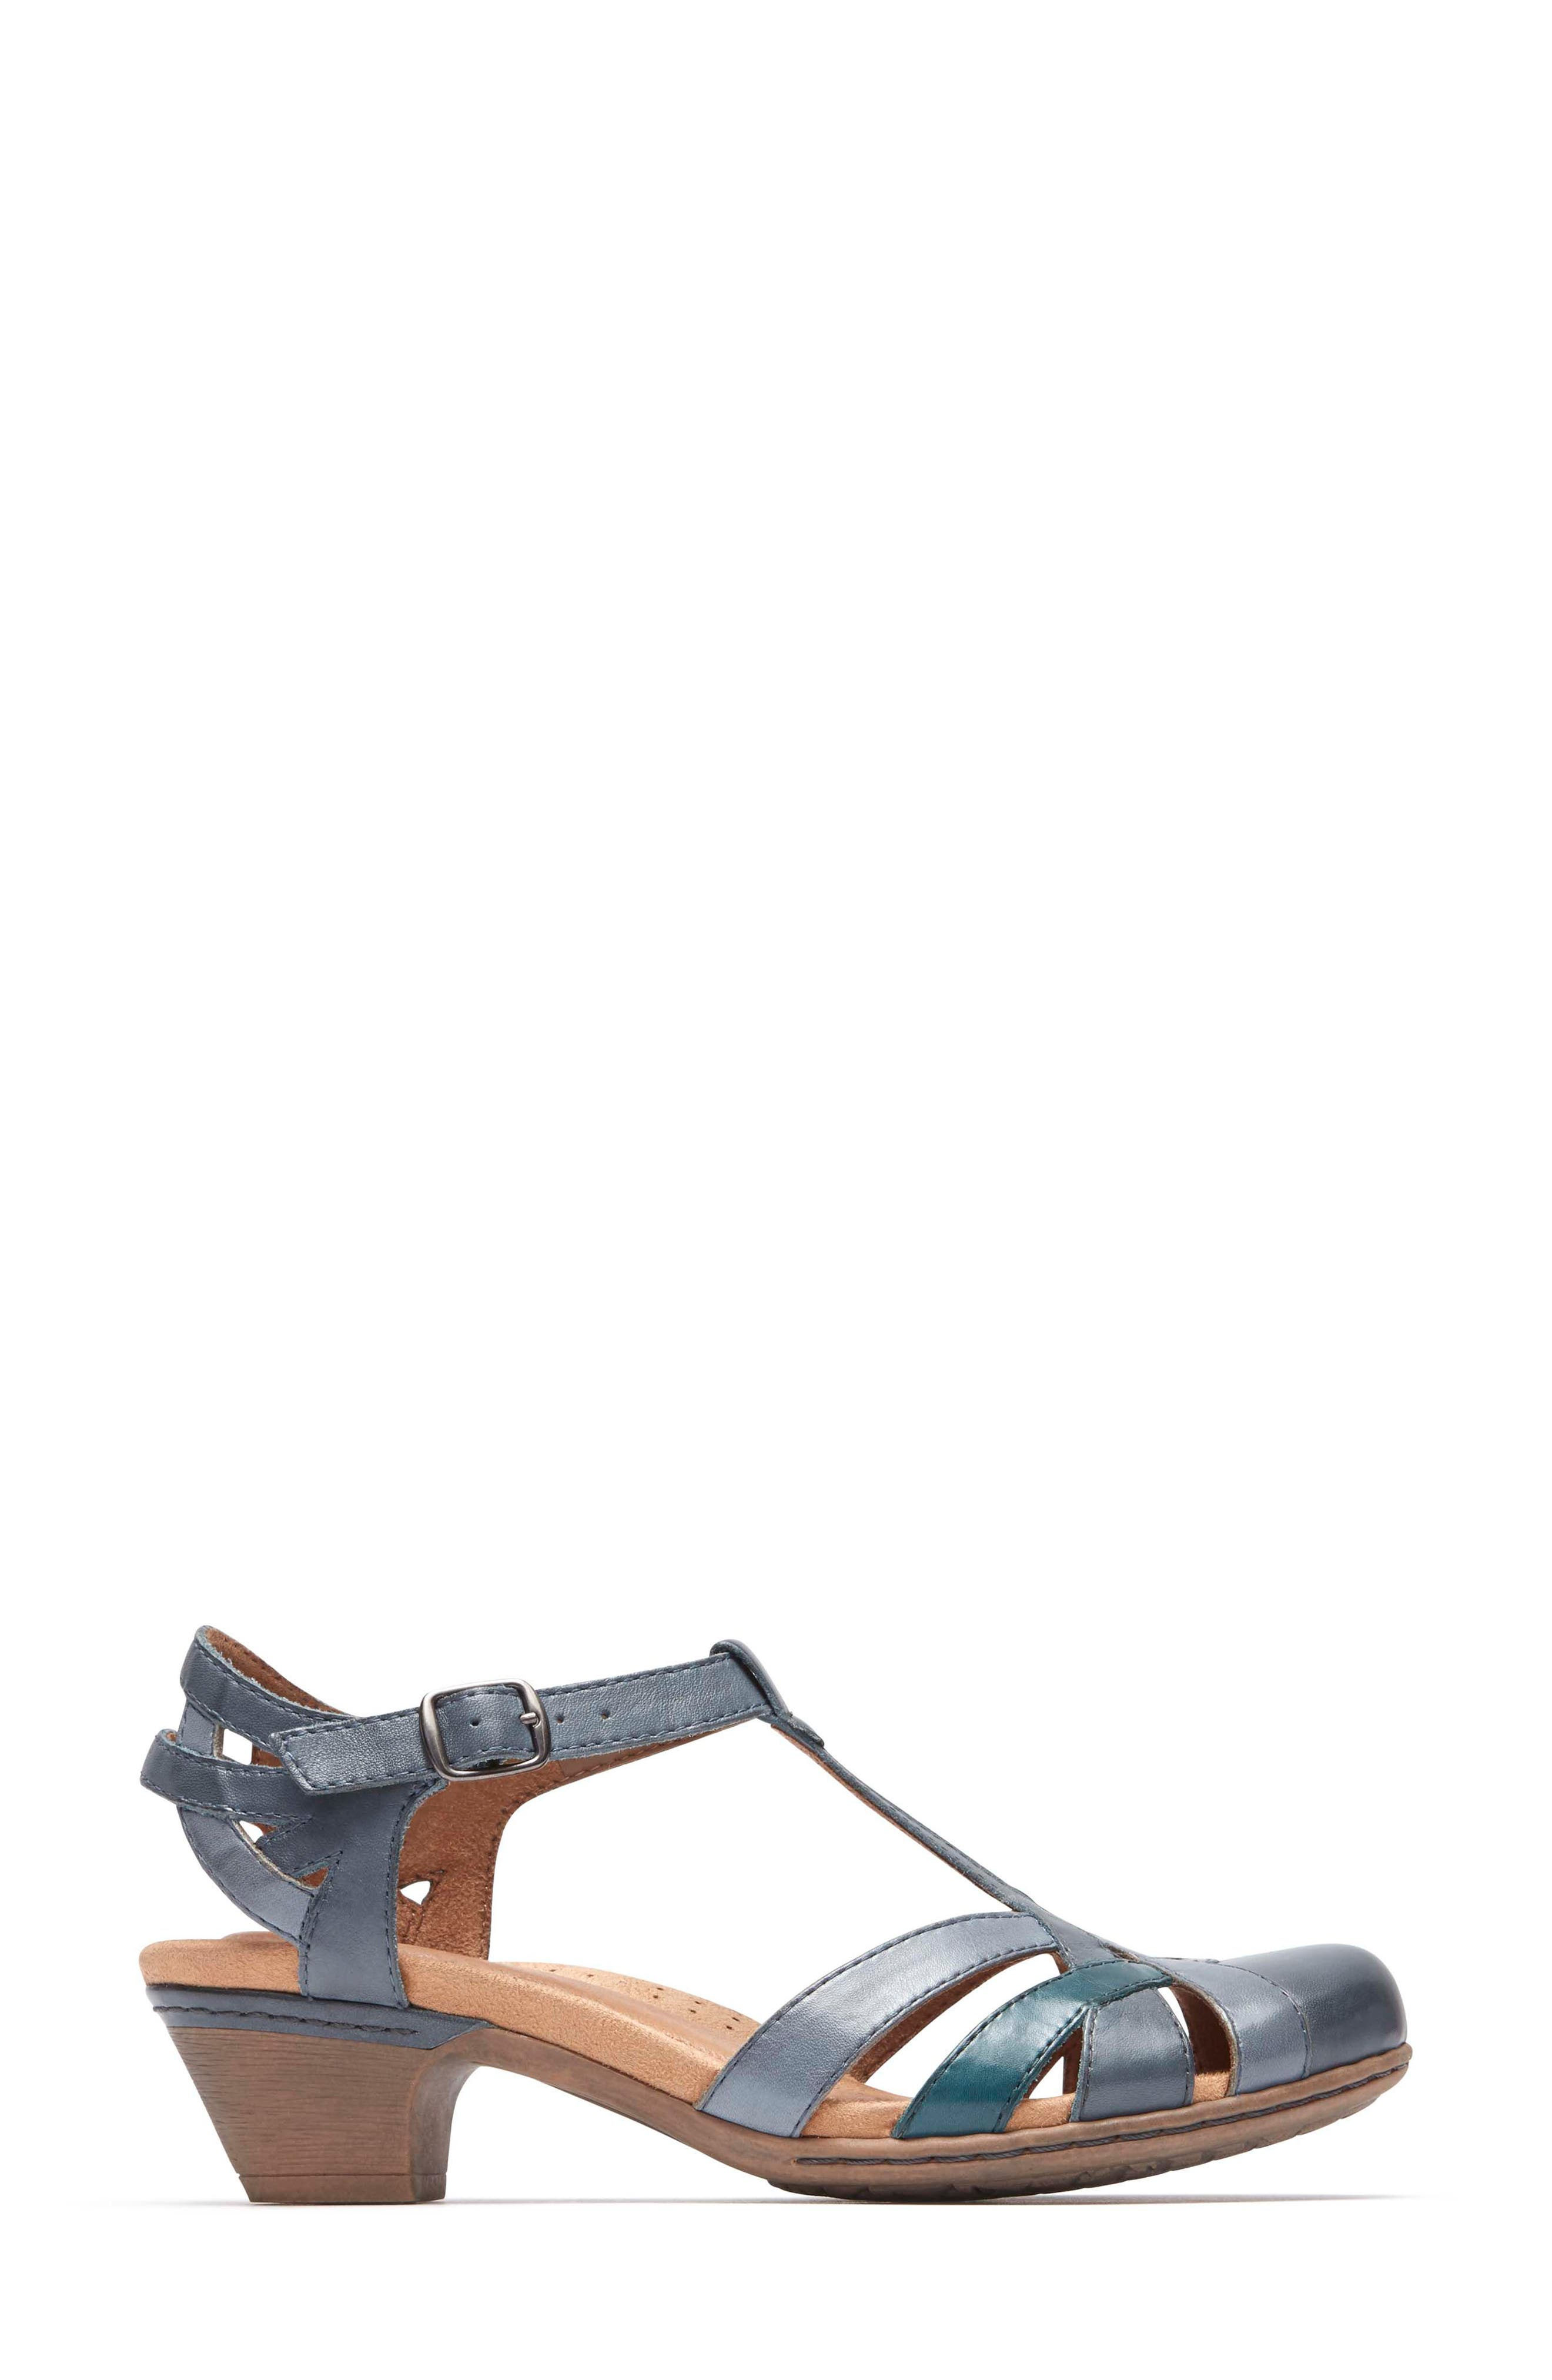 'Aubrey' Sandal,                             Alternate thumbnail 34, color,